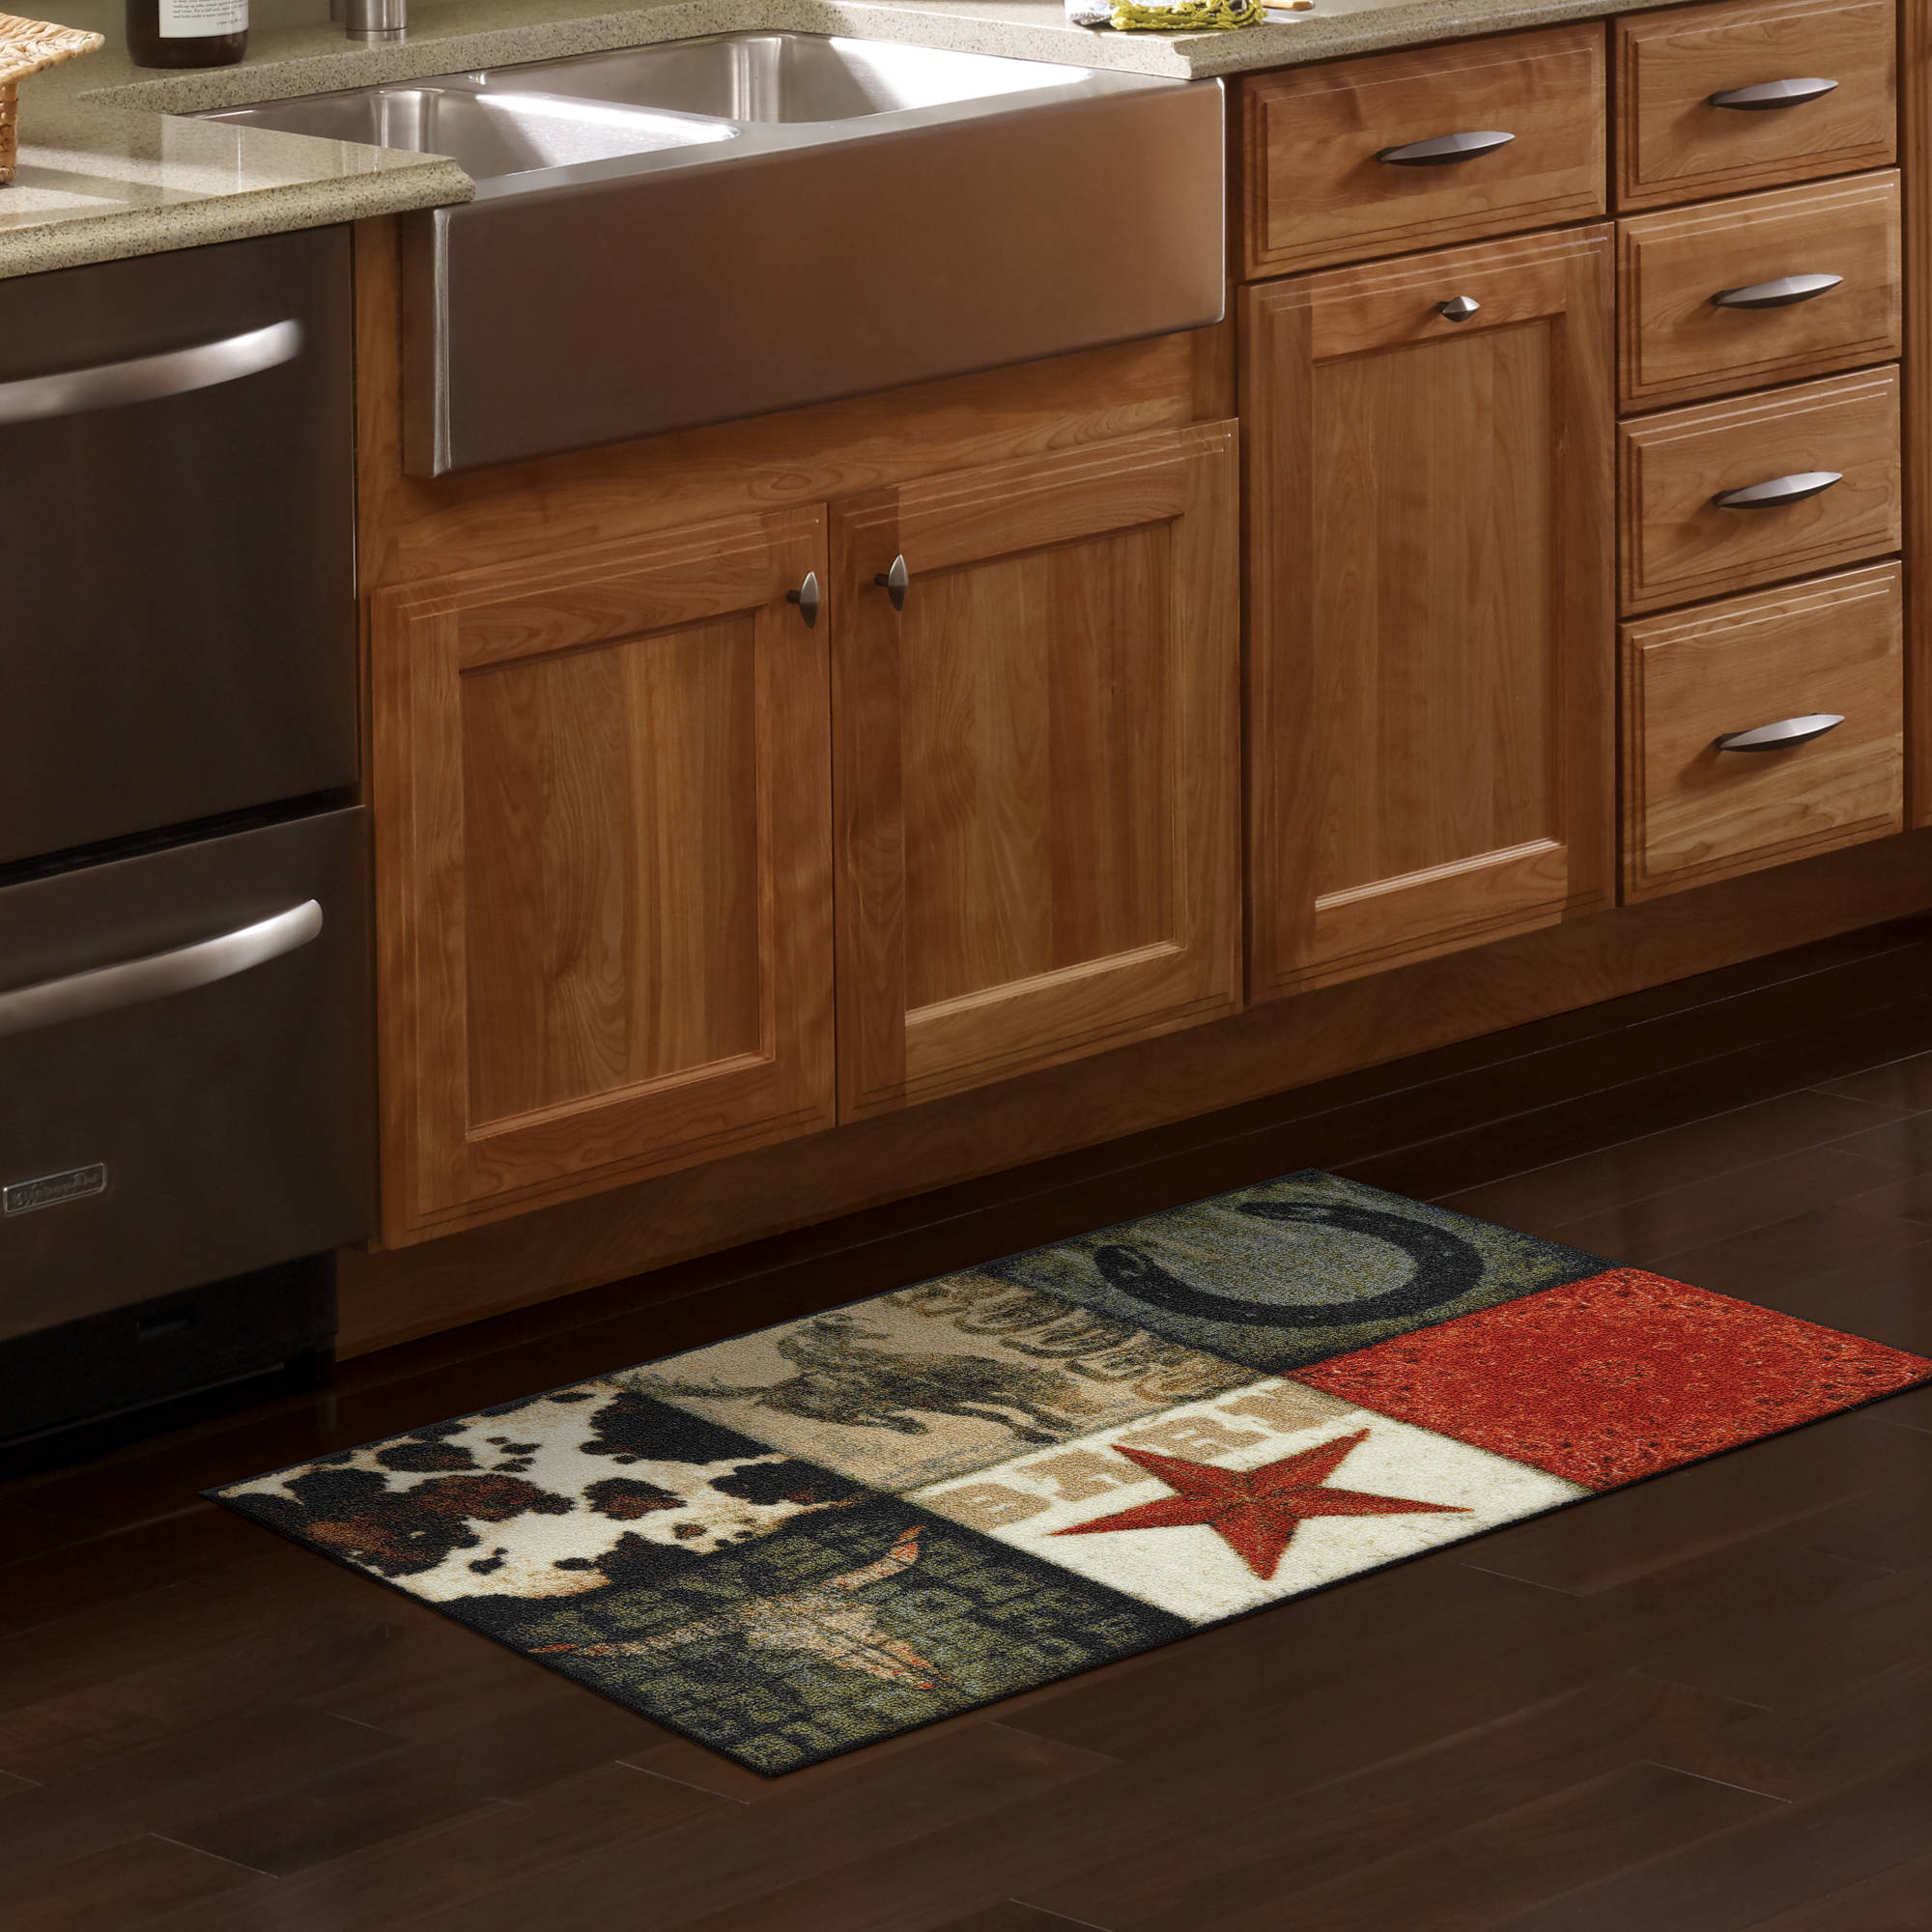 mainstays texas cowboy kitchen rug walmartcom - Kitchen Rugs Walmart